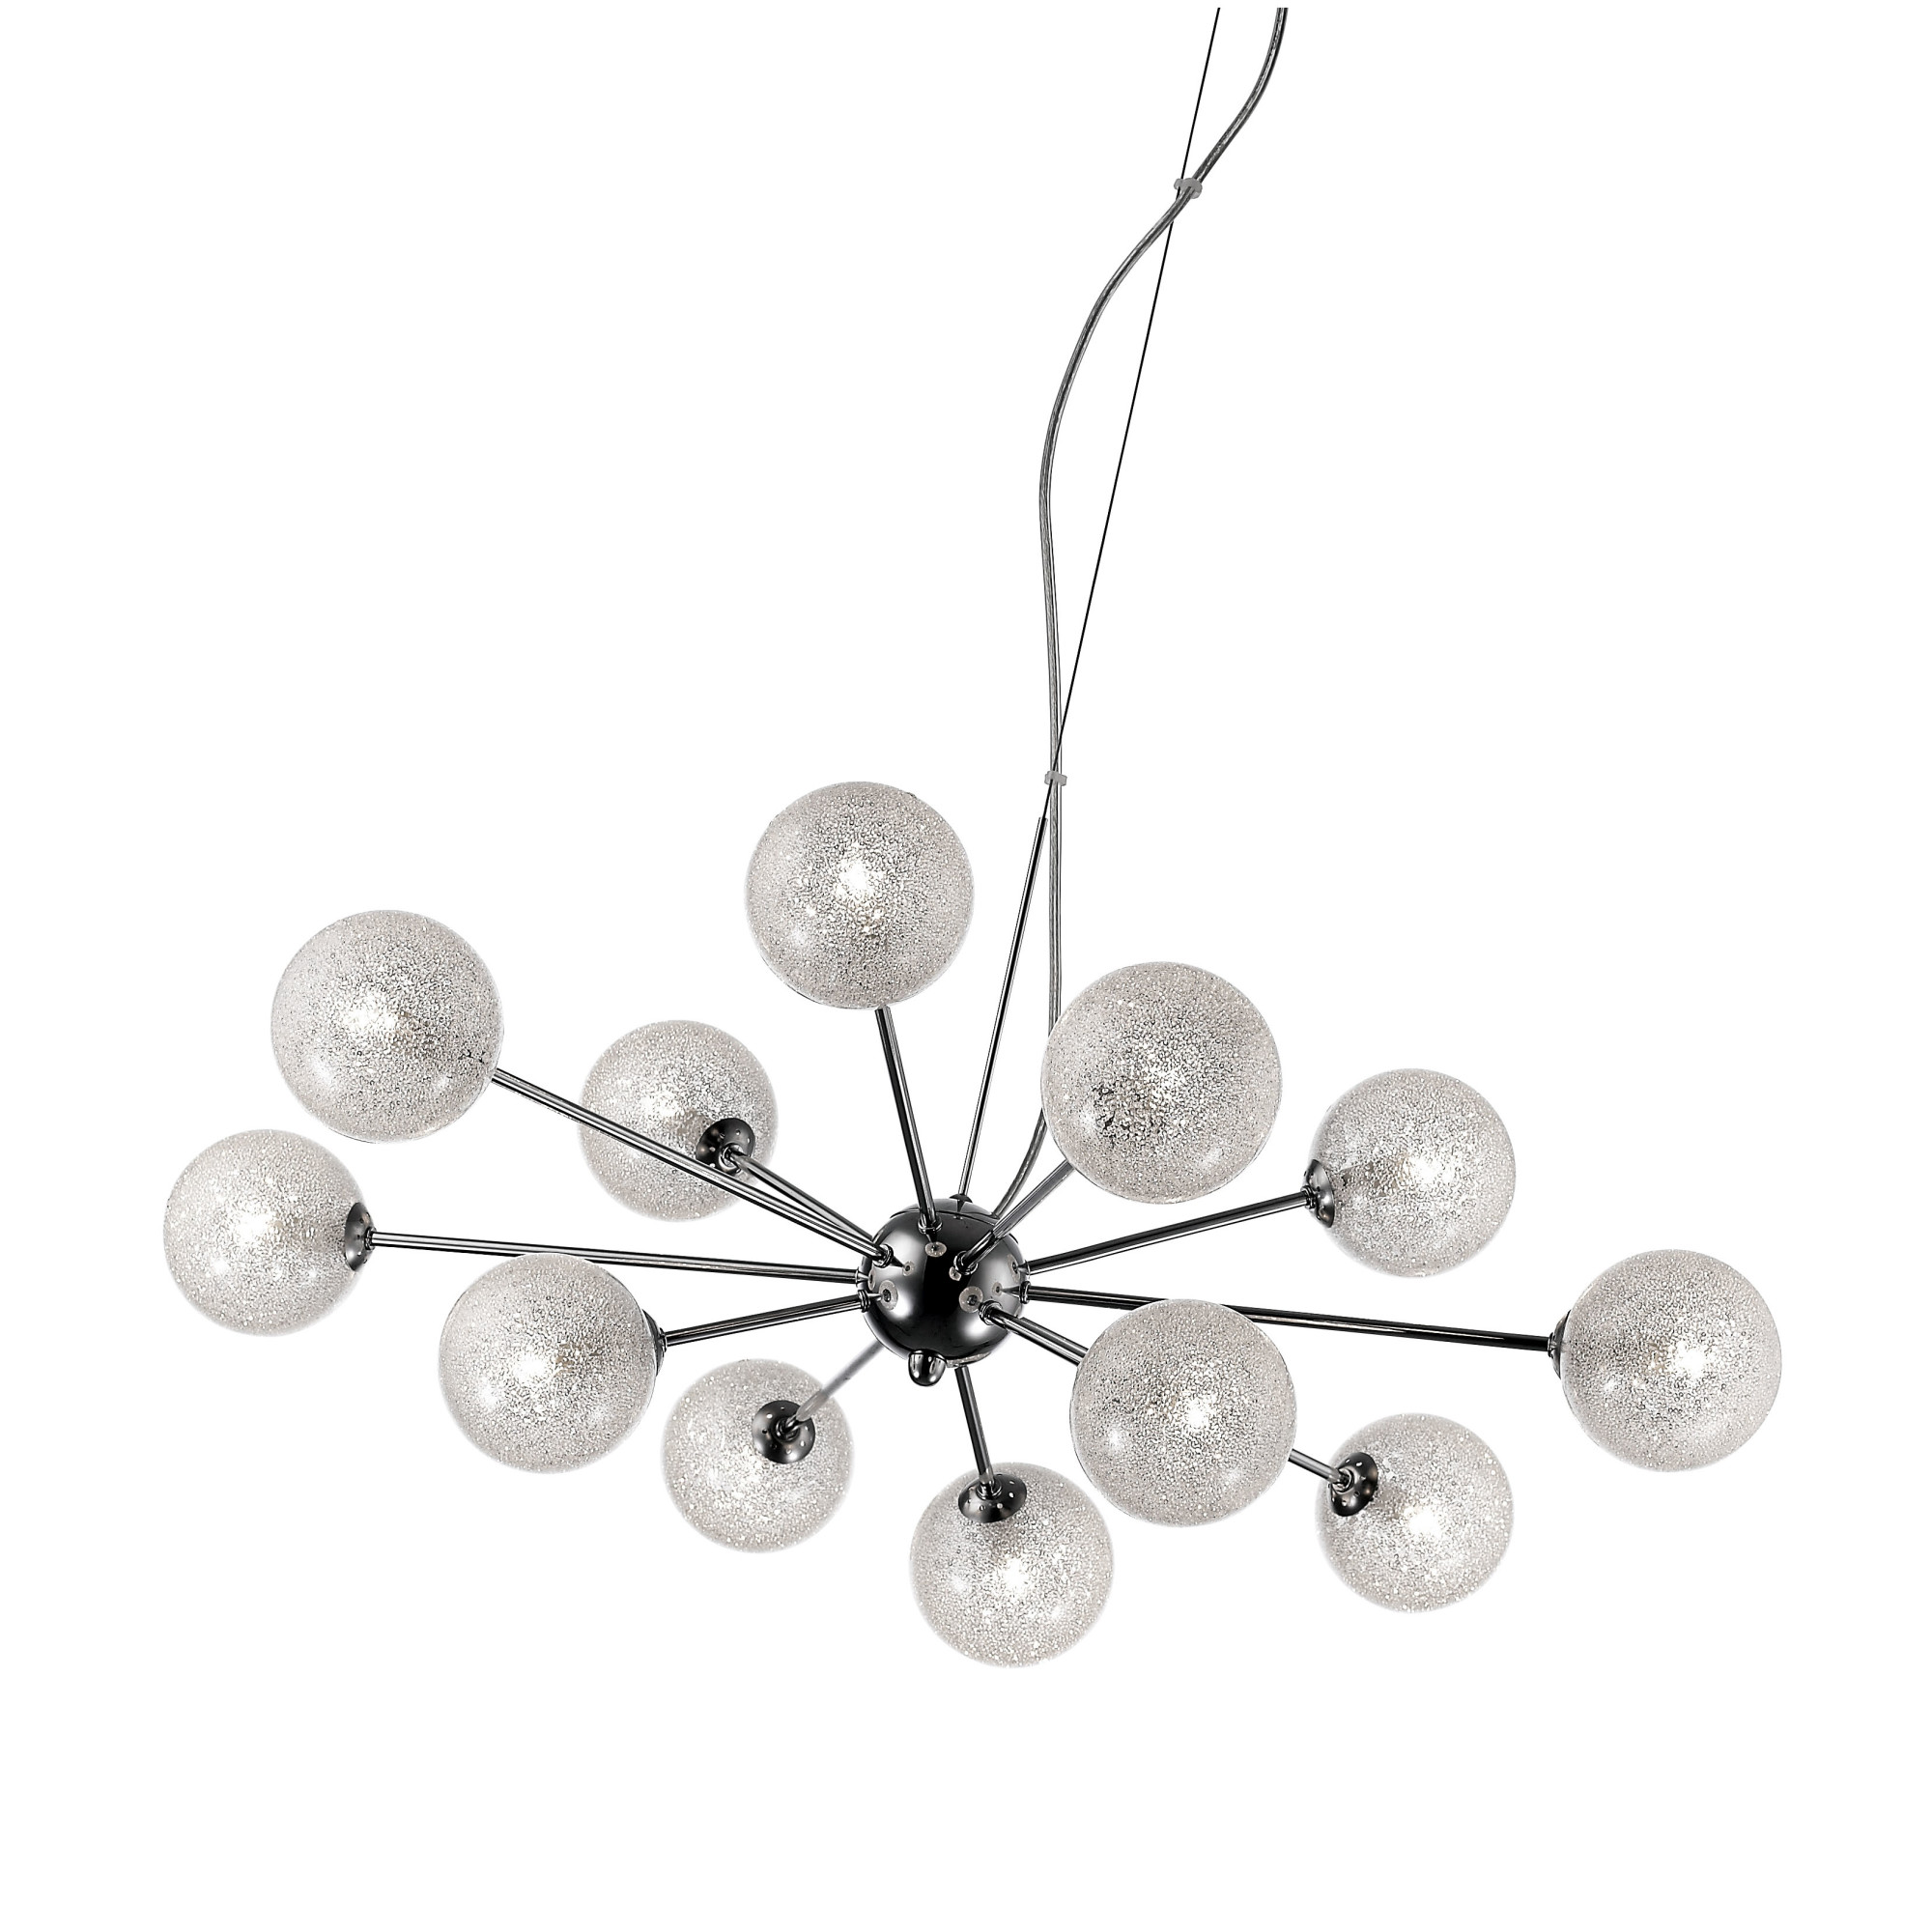 Chandelier Height 10 Foot Ceiling Details About Access Lighting 62327 Ch Clr Opulence 12 Light 31